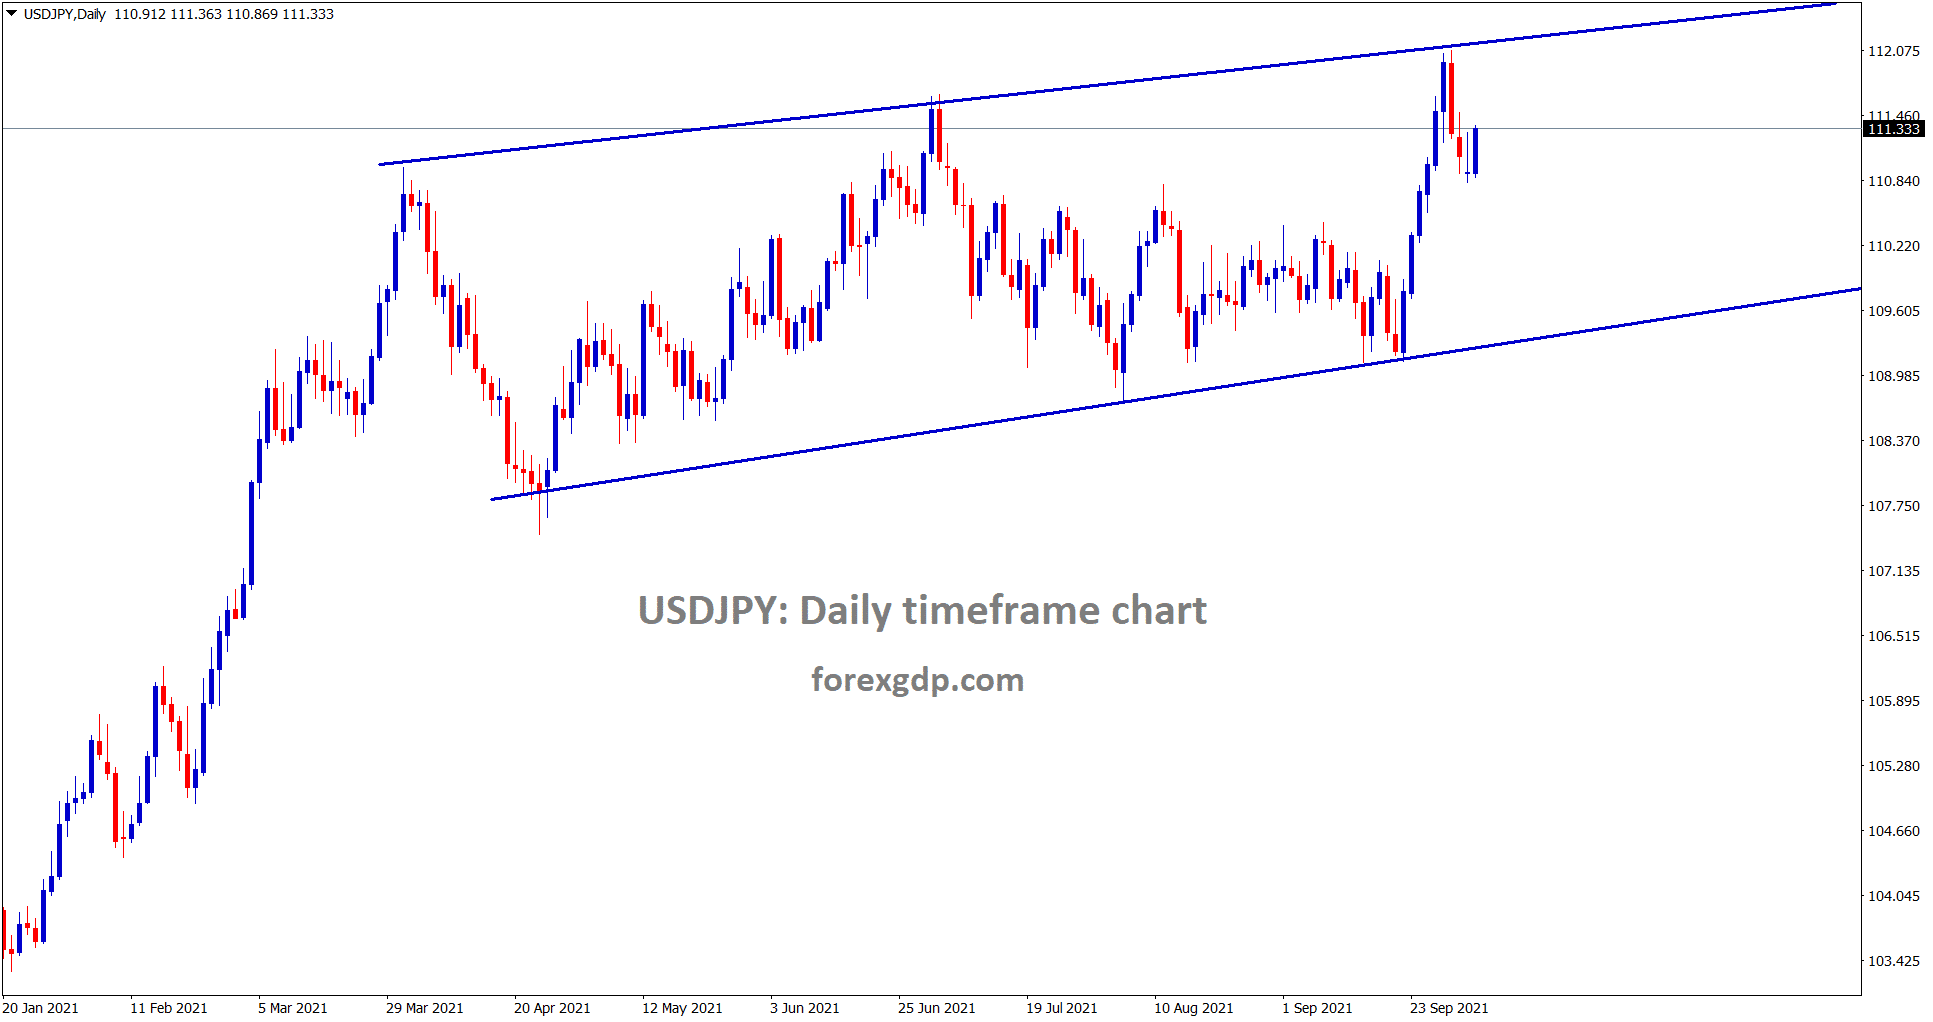 USDJPY is trying to move up again after doing a minimum correction